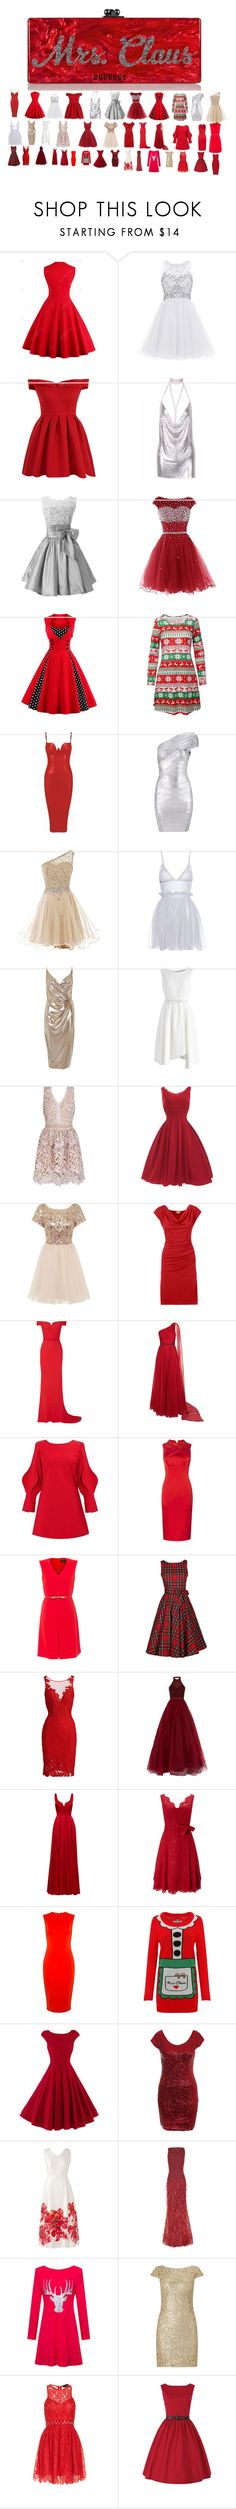 """mrs. claus dresses"" by abuffaloe on Polyvore featuring Edie Parker, Chi Chi, Alexander McQueen, River Island, Chicwish, Jovani, MaxMara, ML Monique Lhuillier, Halston Heritage and Phase Eight"